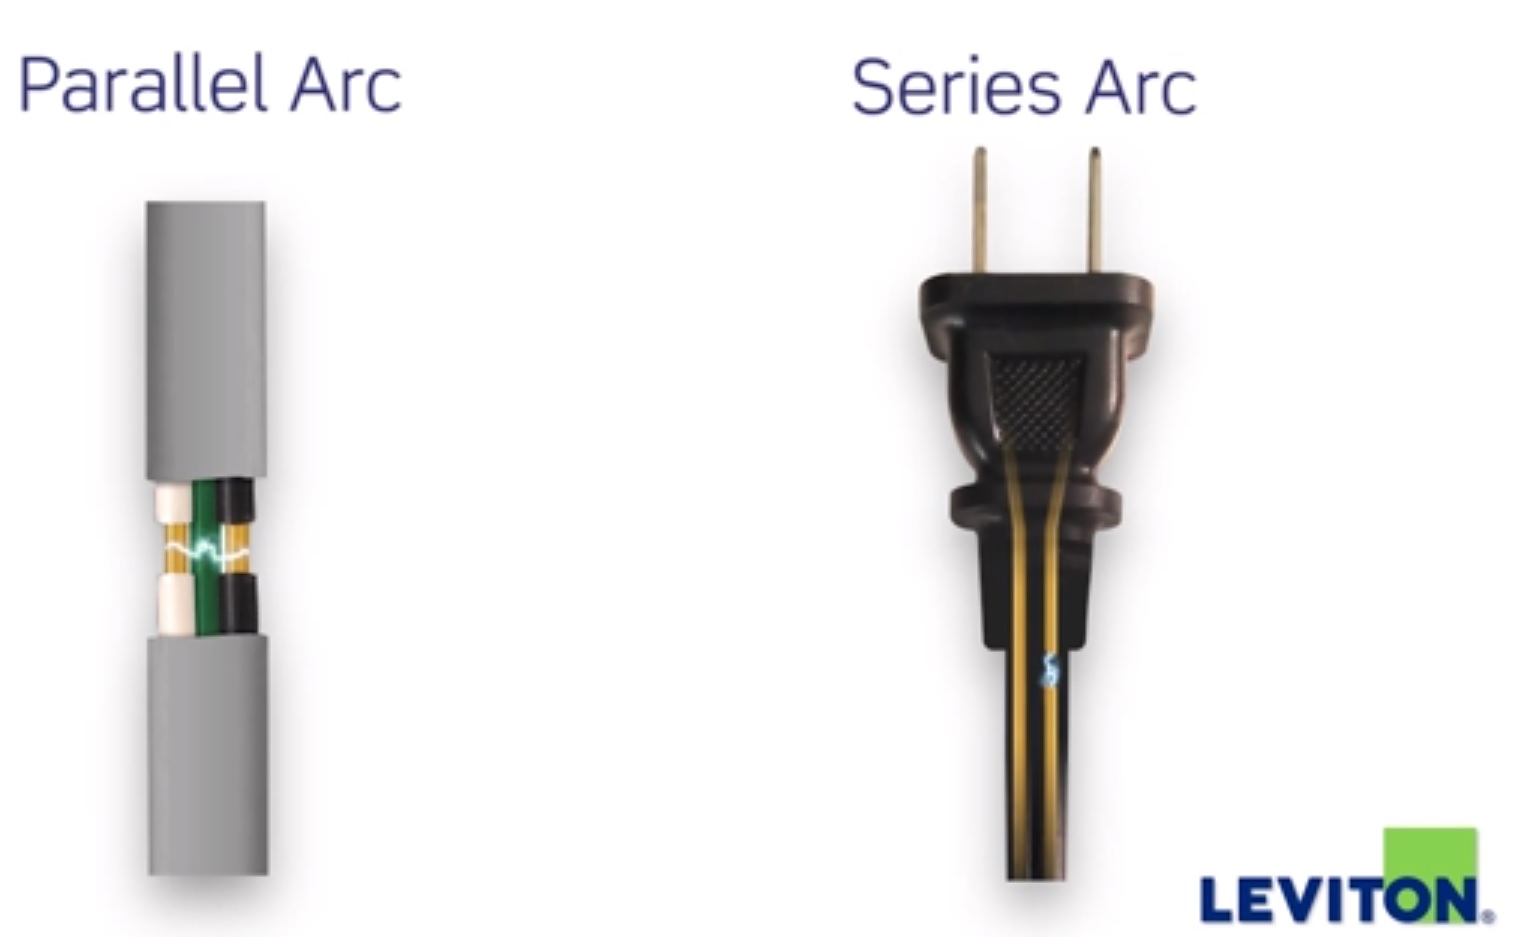 My New Outside Blog Claims 60 We Claim 1 An Arc Fault Circuit Interrupter Afci Device Faults But What About The More Dangerous Parallel Arcs Ocb Type Will Only Provide Downstream Protection